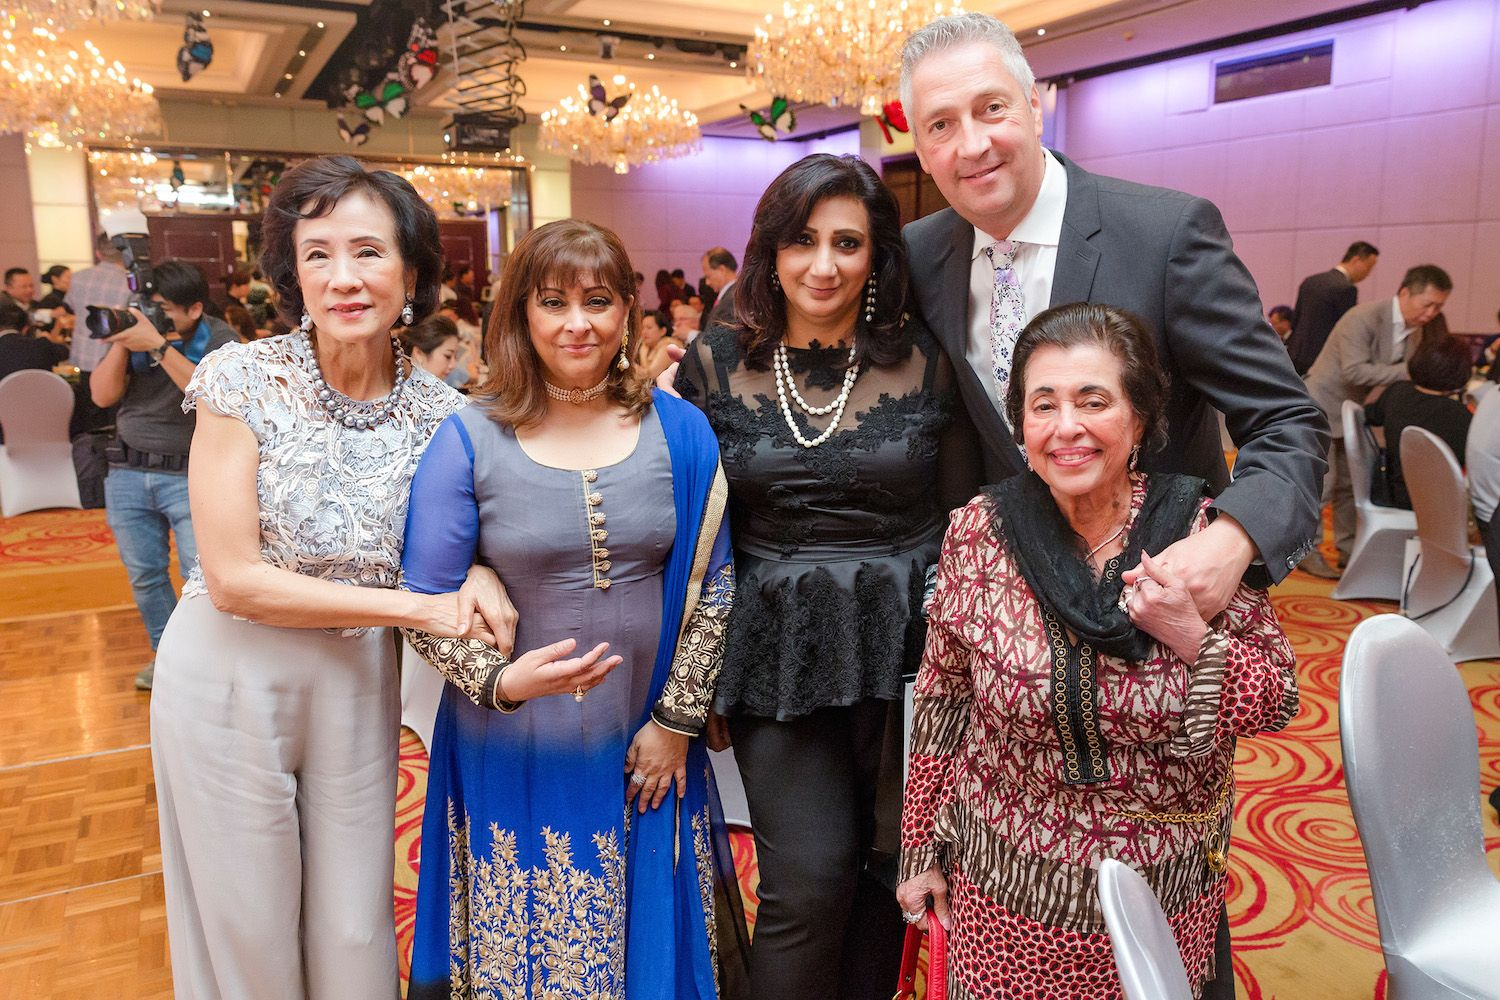 Eleanor Morris, Laila Harilela, Ranoo Wasan, Micheal Cottray and Purviz Shroff